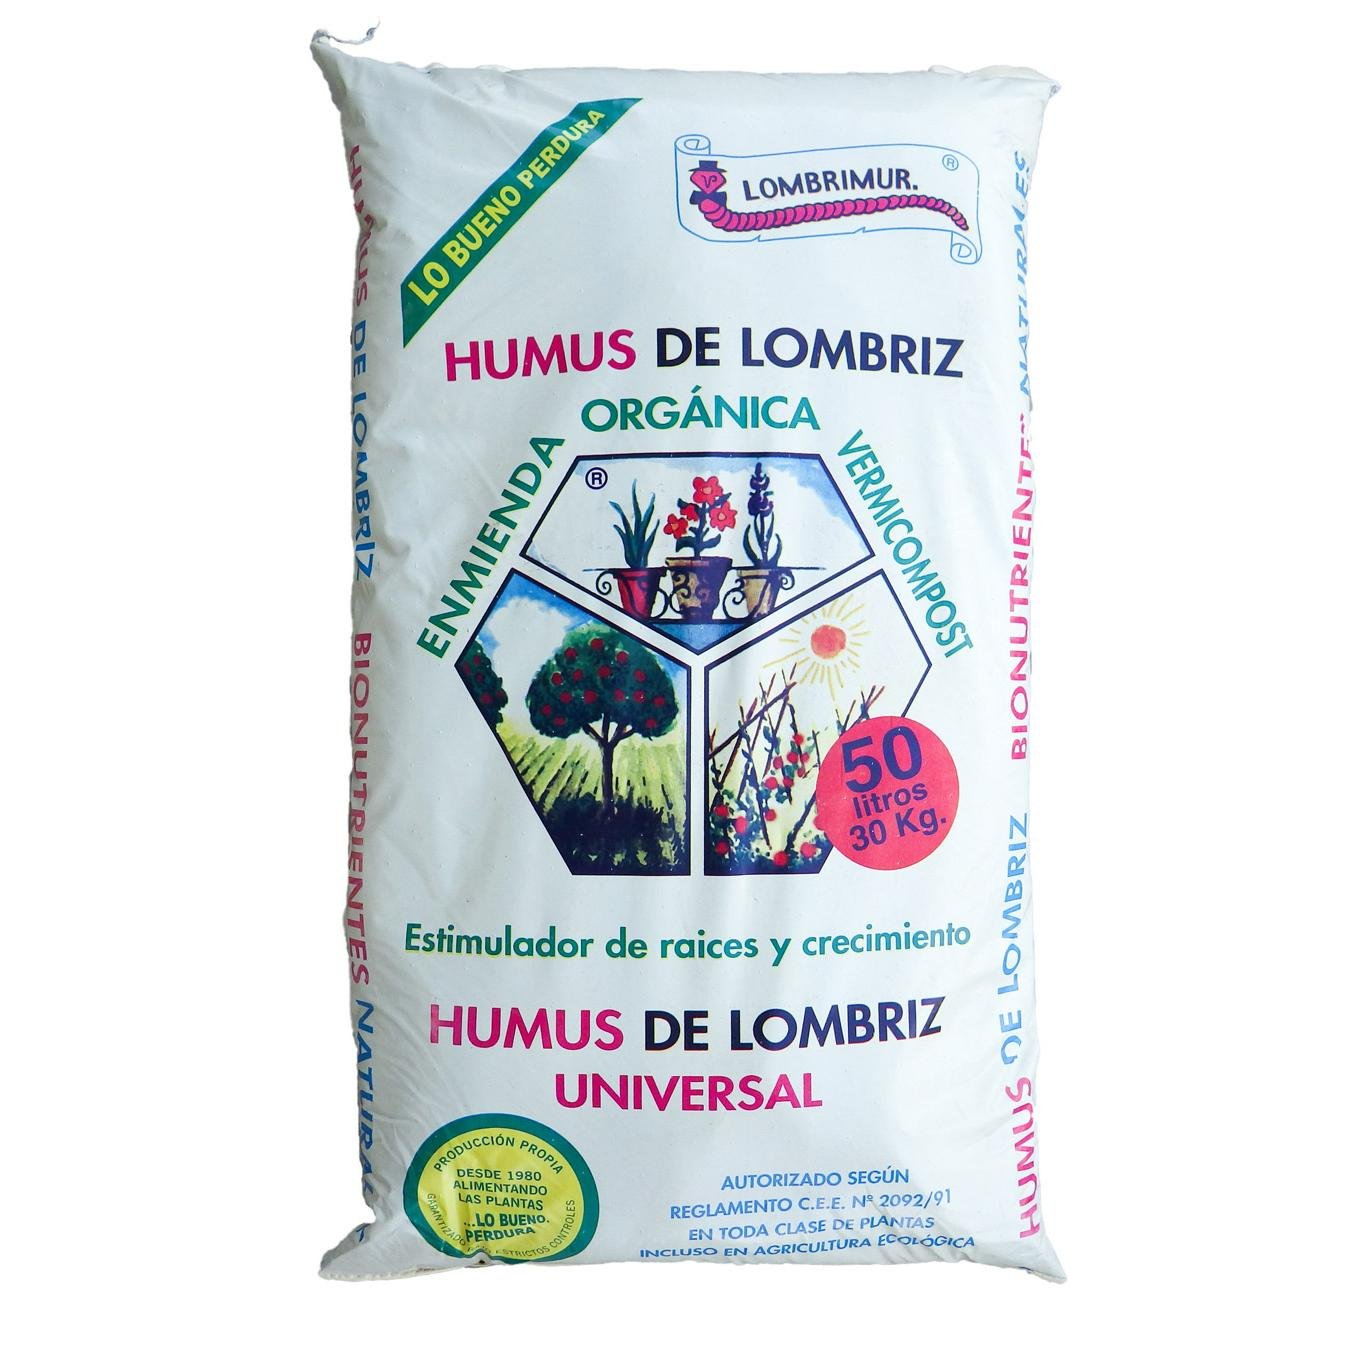 Humus de lombriz 50 L: Amazon.es: Jardín